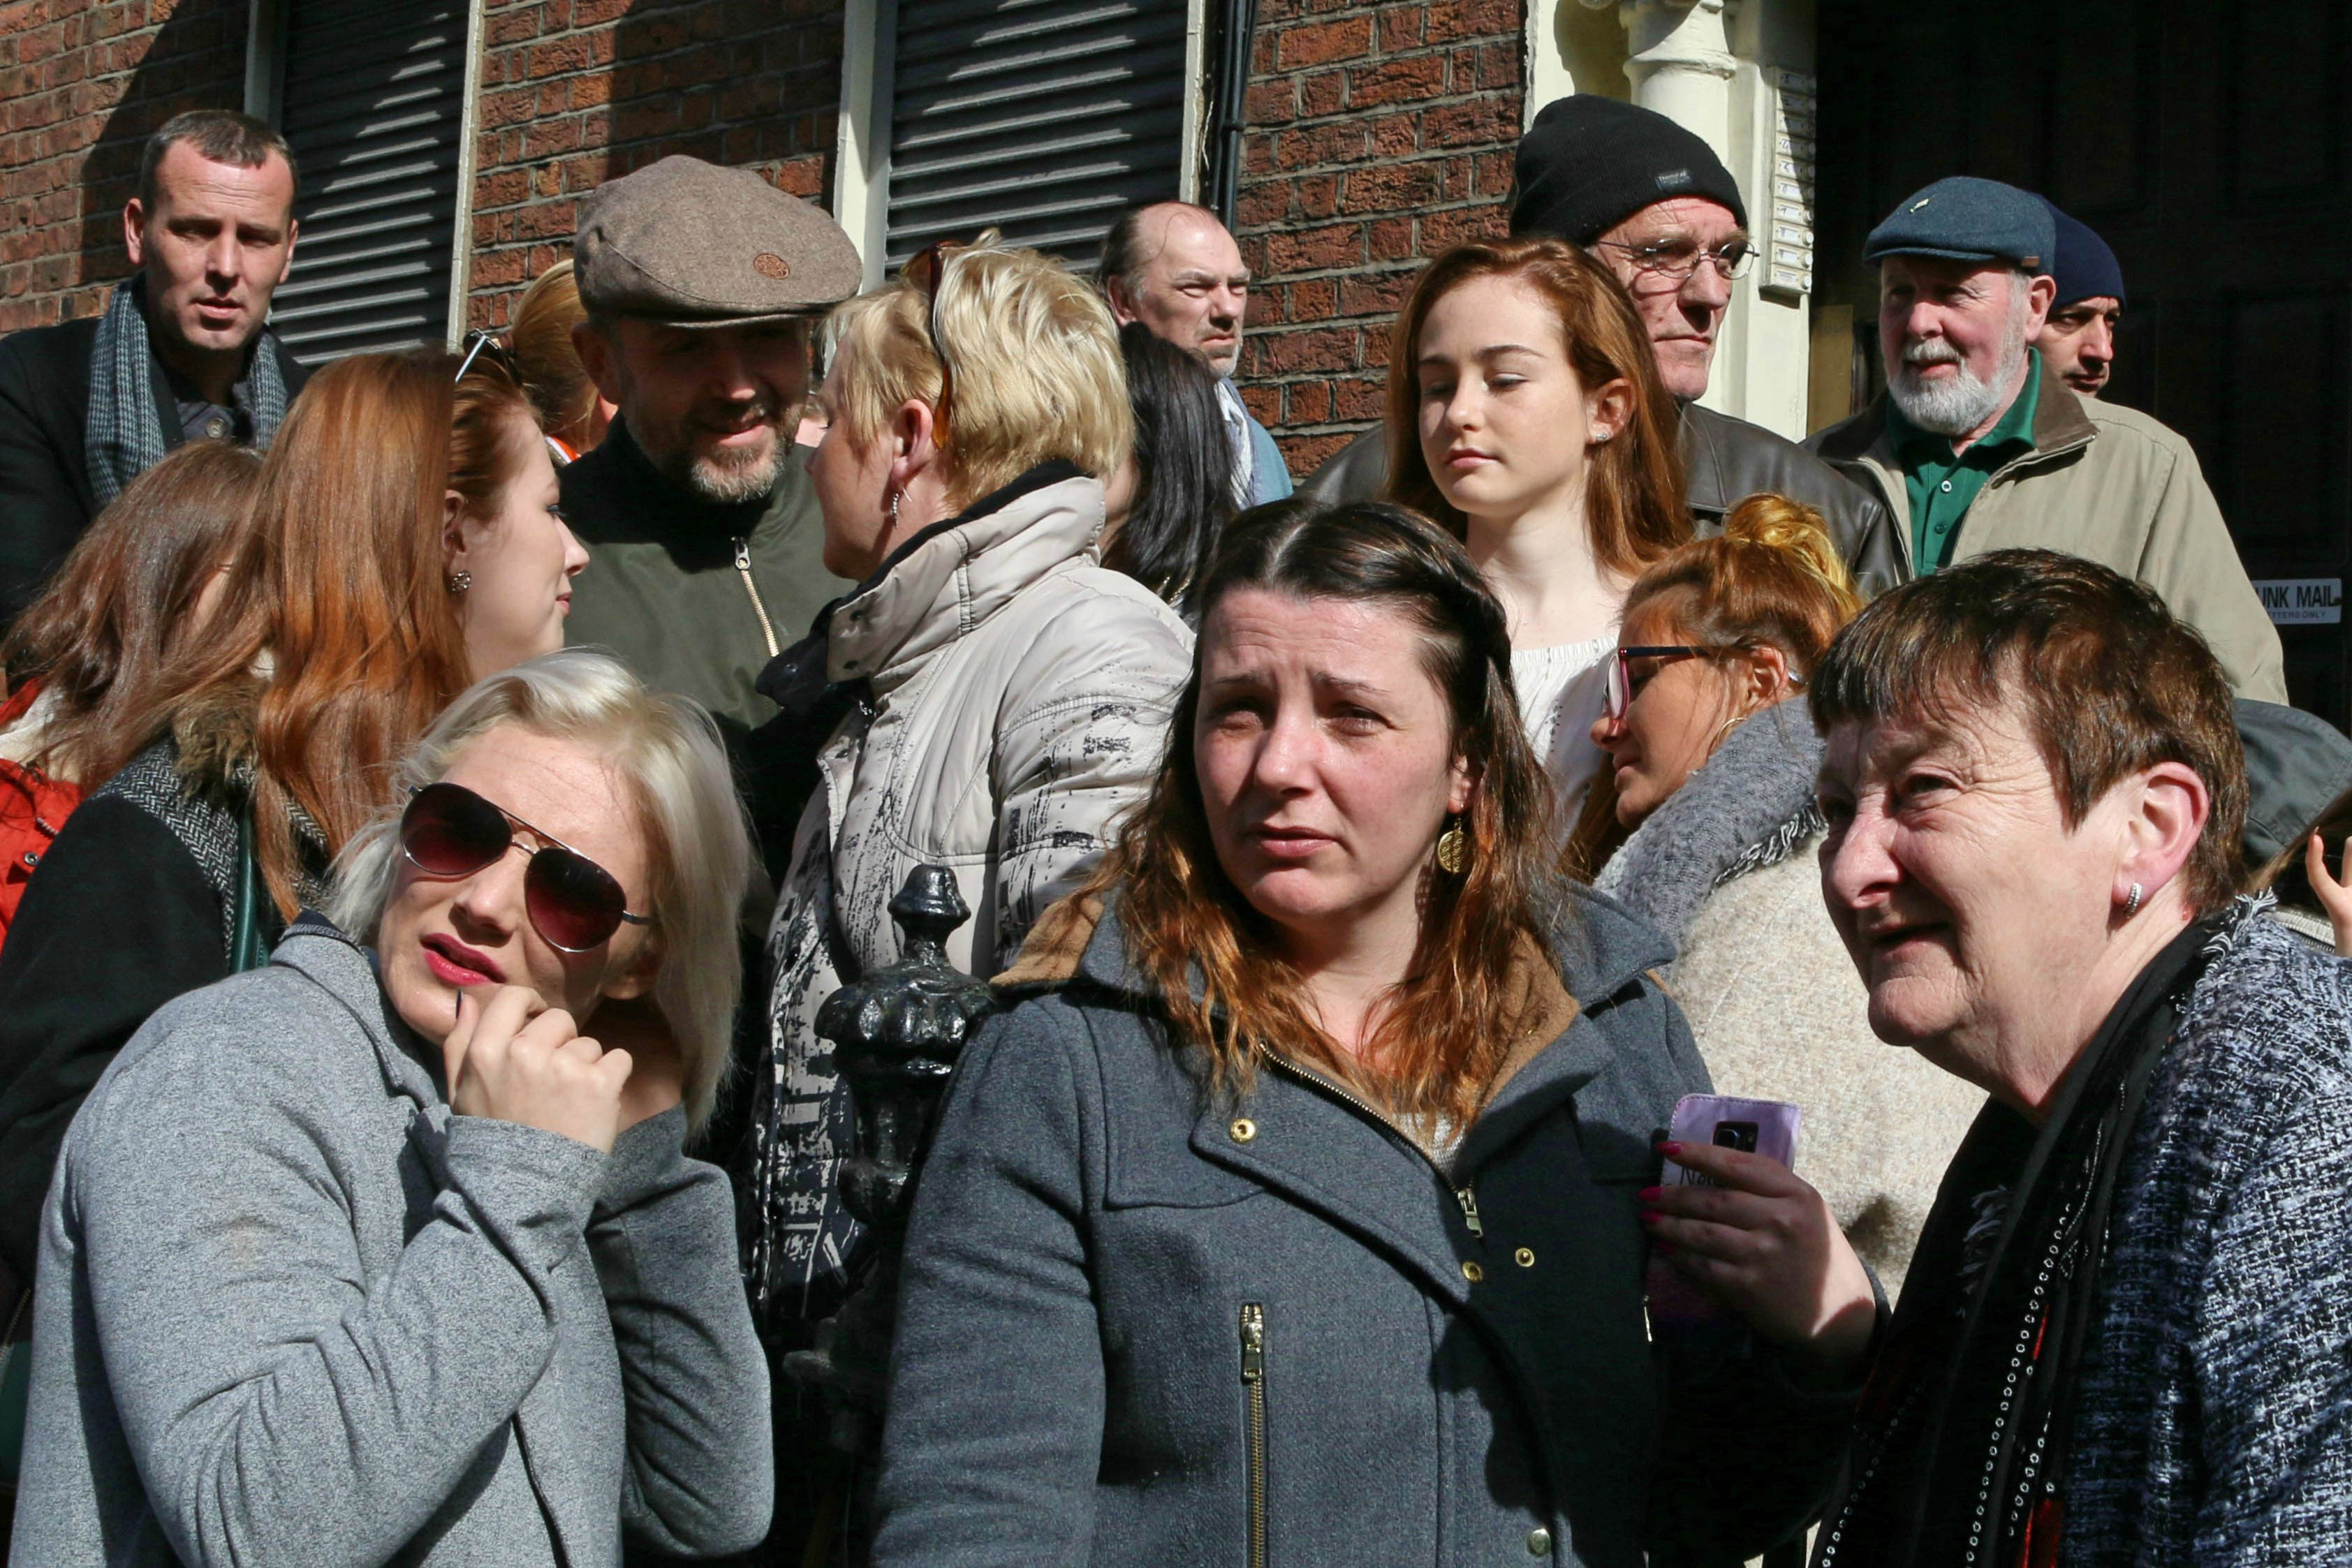 A crowd waits for the parade to pass in Dublin on Easter Sunday during events commemorating the Easter Rising against British rule. (Danielle Houghton/GroundTruth)